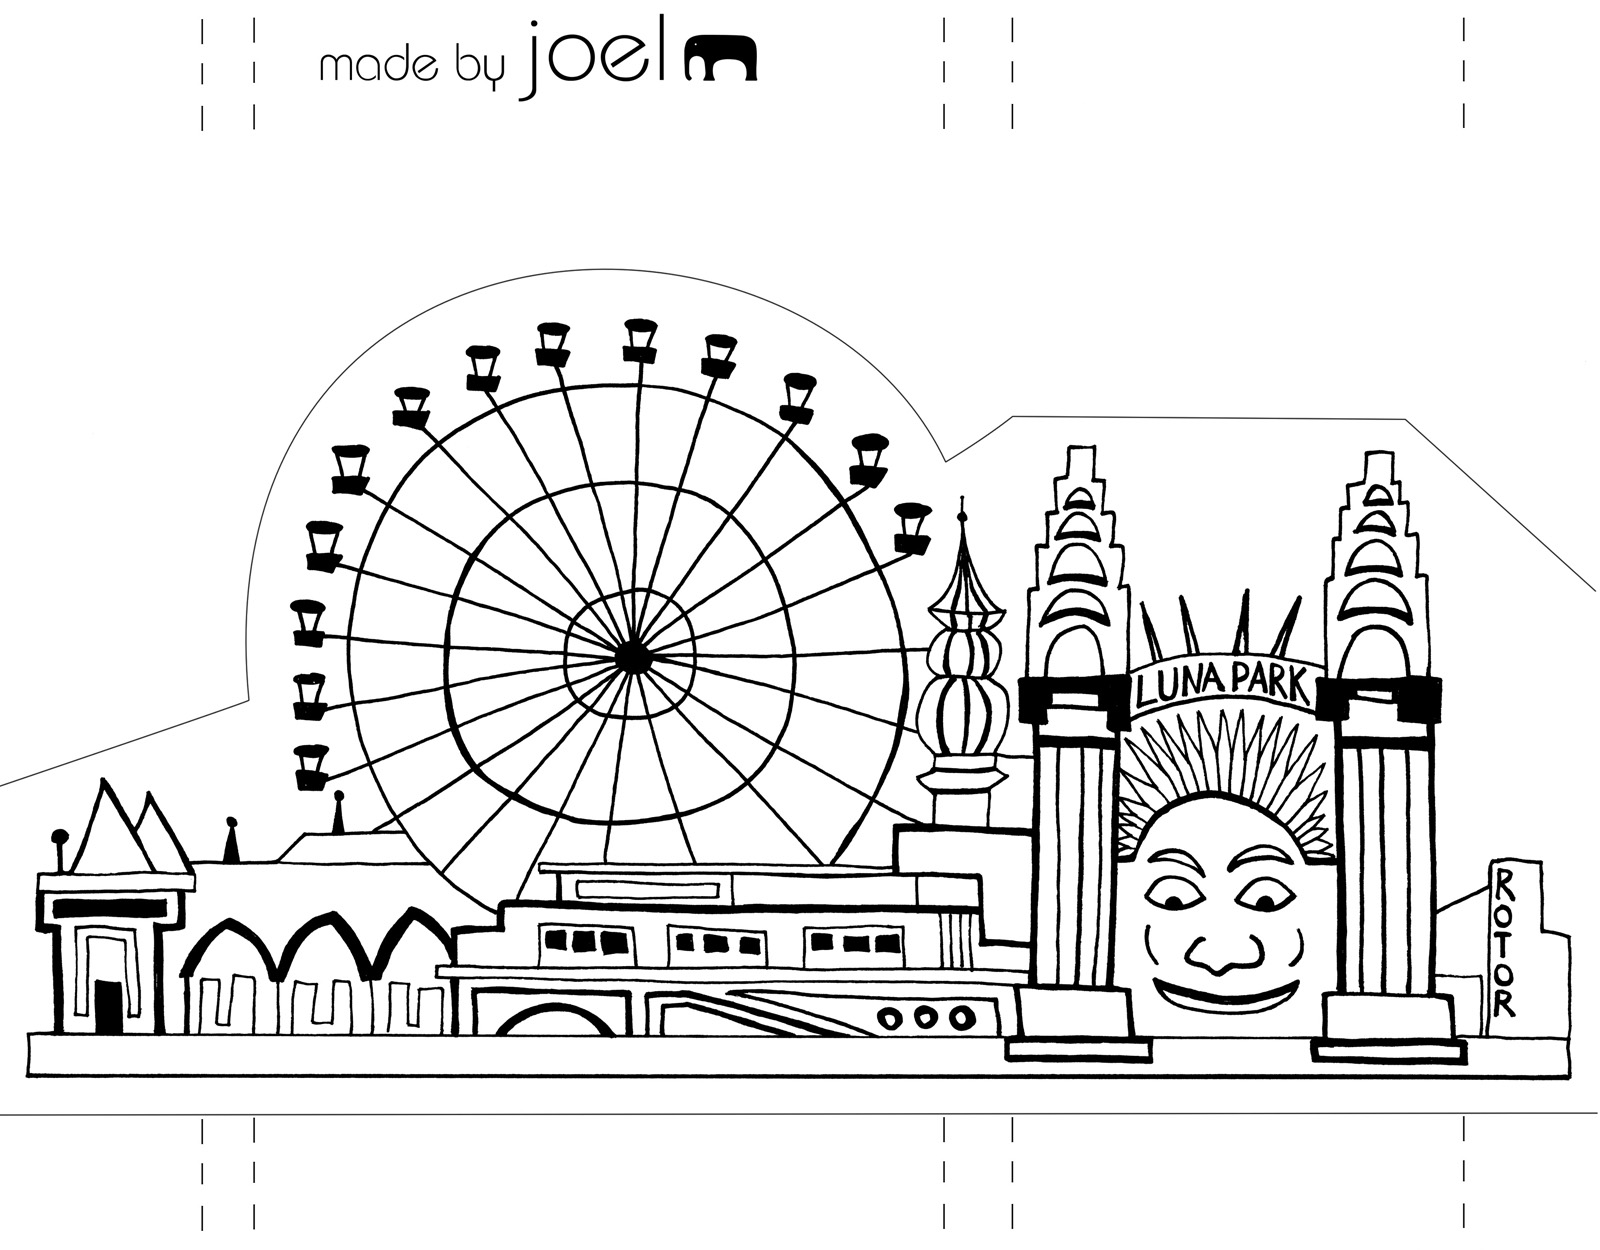 Made By Joel Paper City Sydney Opera House And Luna Park